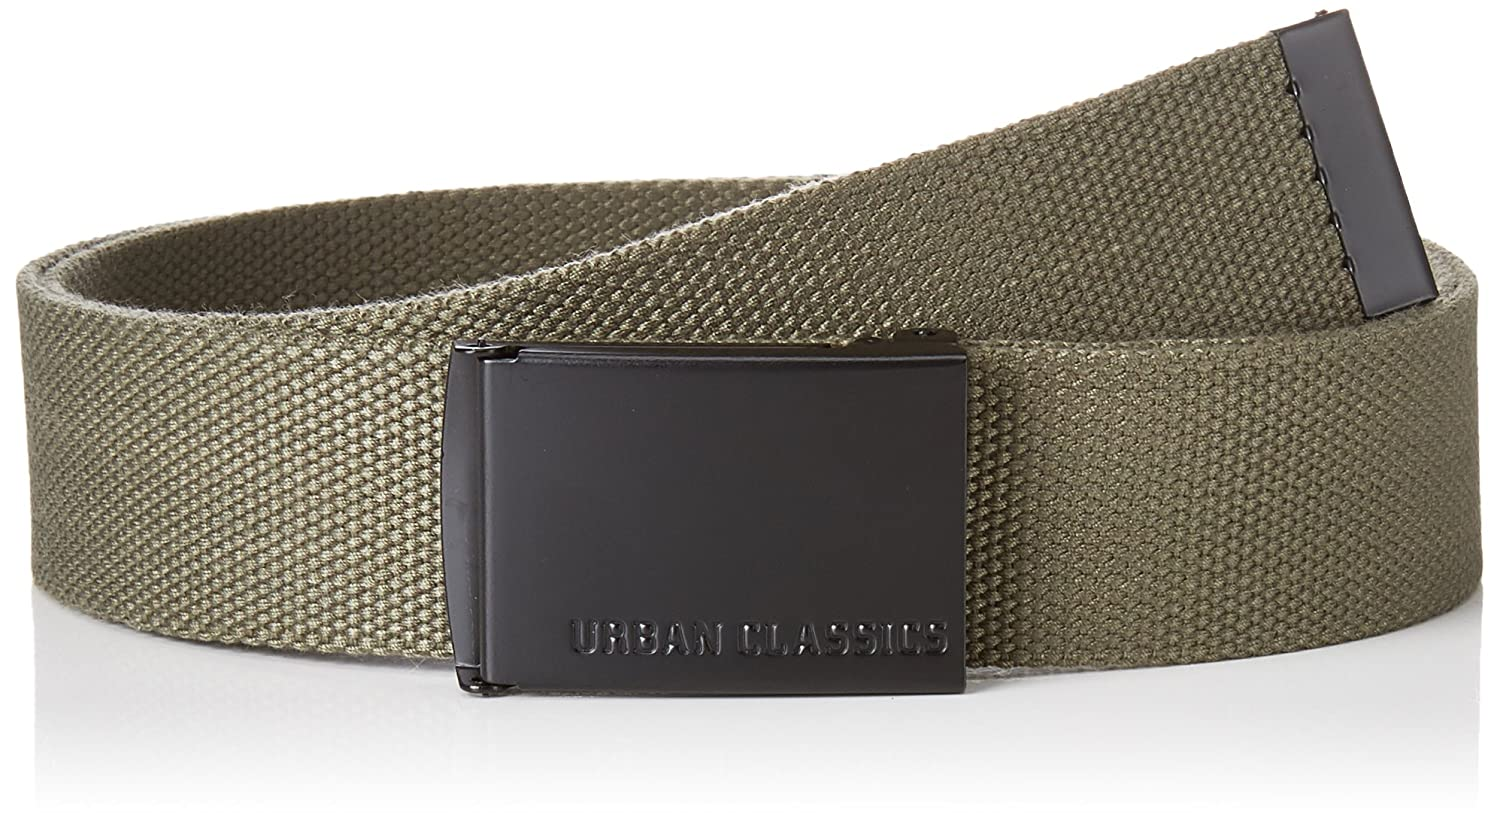 Urban Classics adjustable up to 120cm CANVAS fabric belt One Size